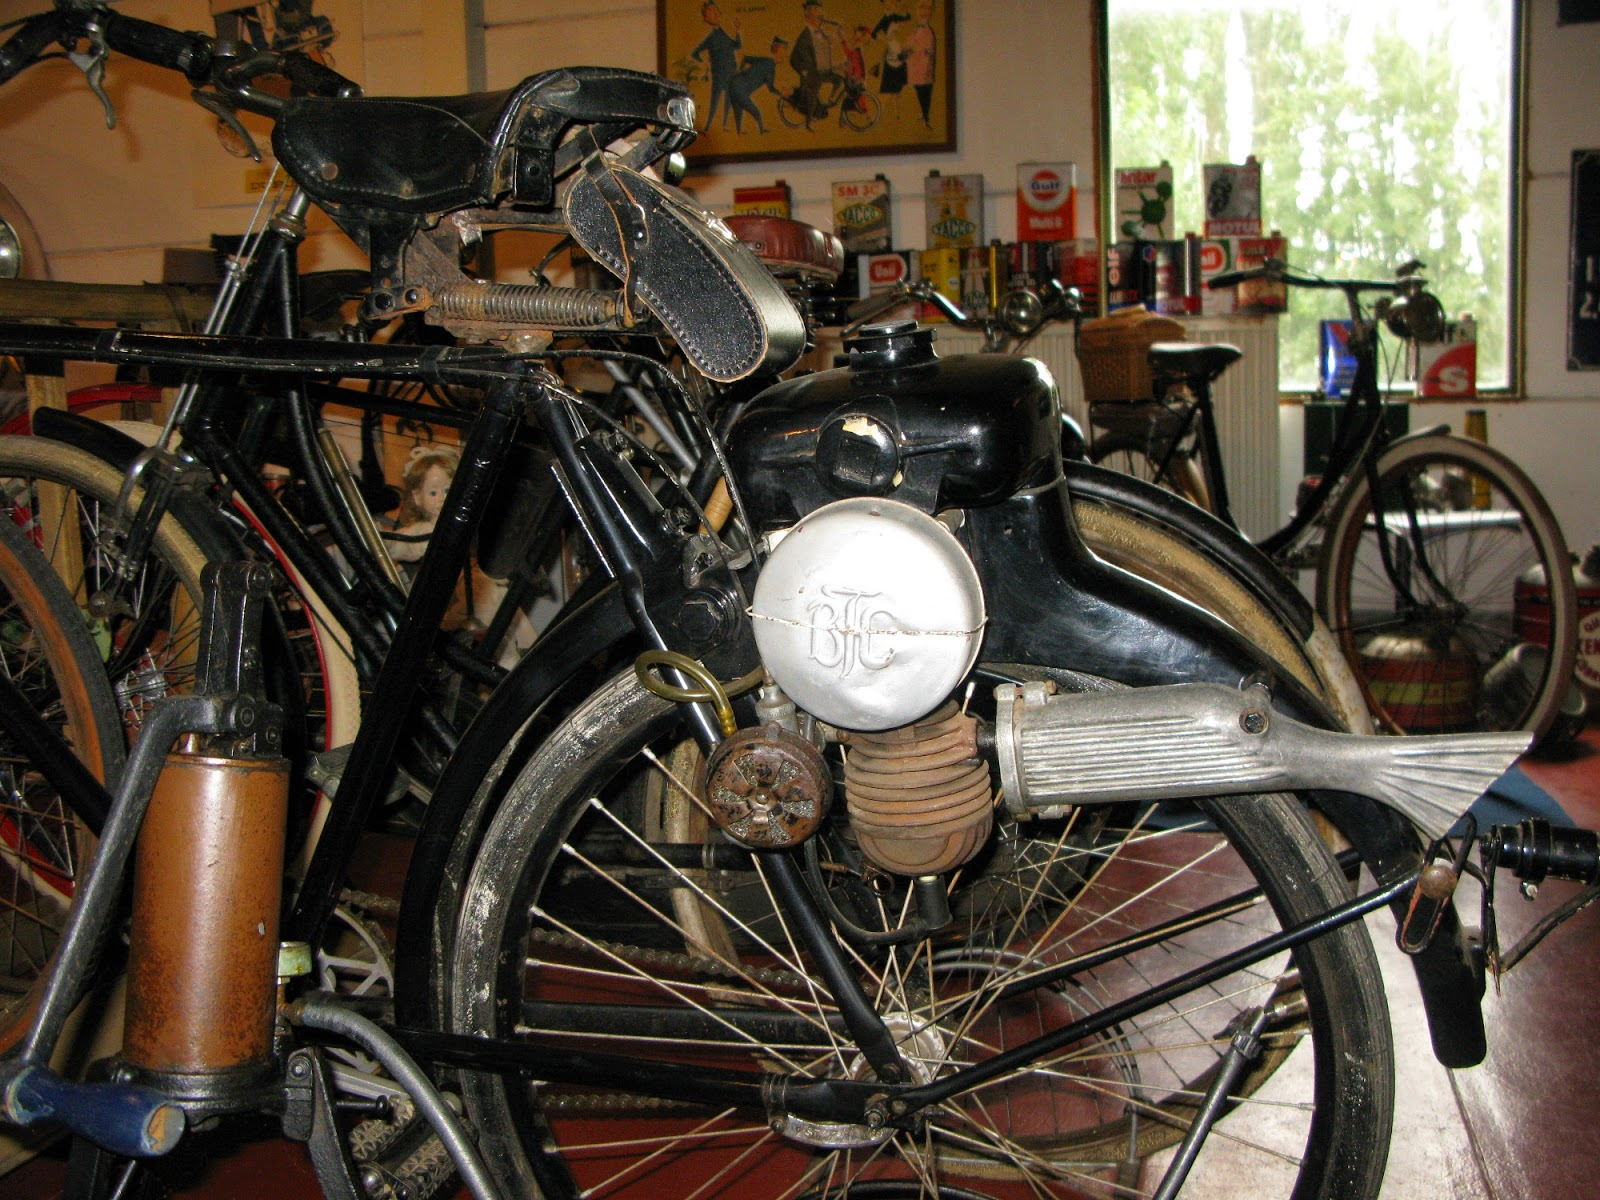 Danish BTC cyclemotor from 1951